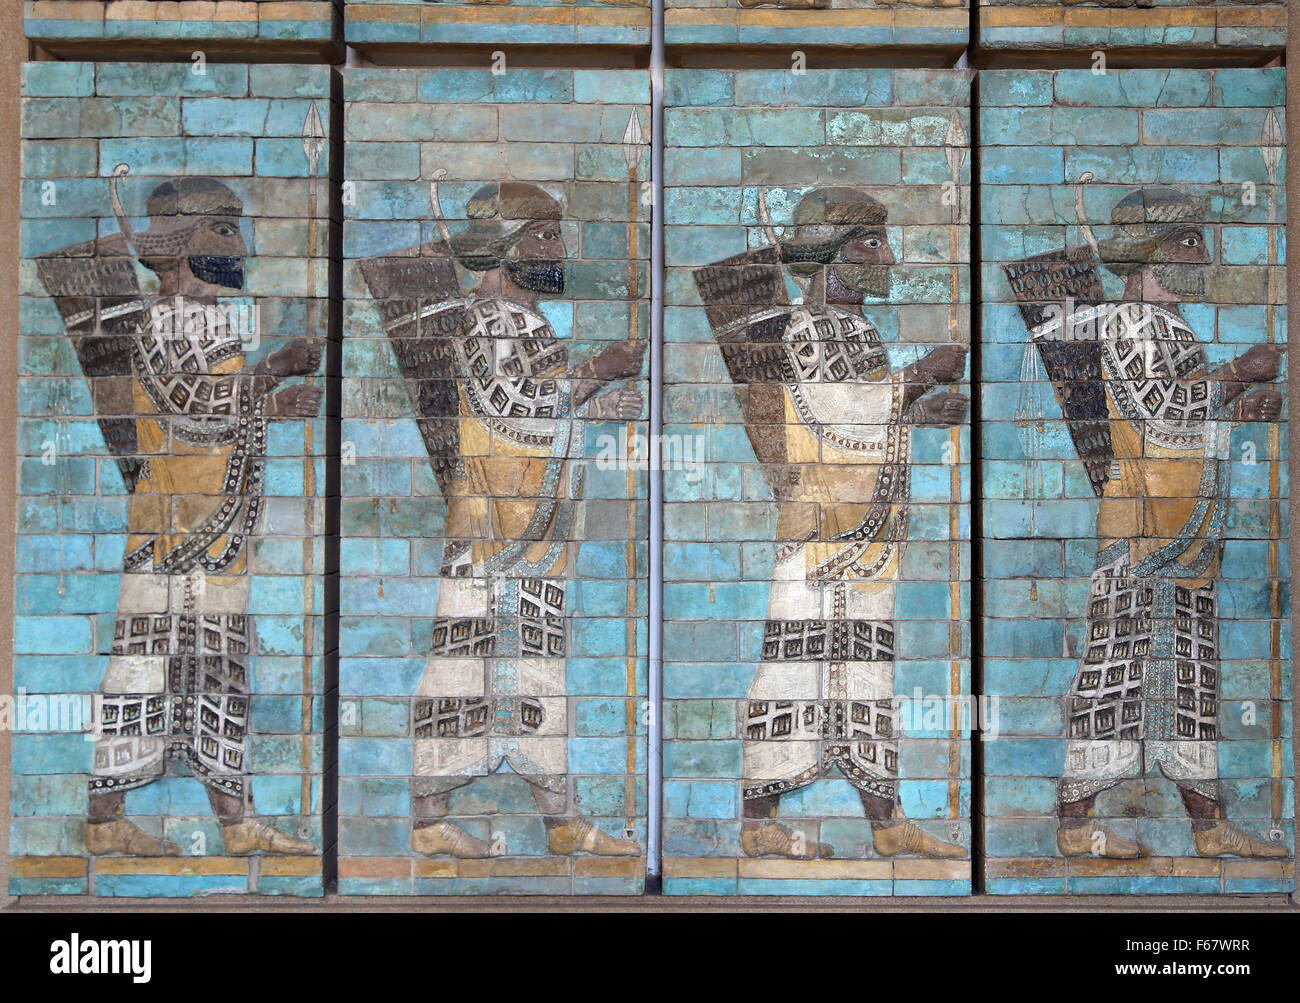 Frieze of Archers. Persian soldiers. Palace of Darius the Great. 6th century BC. Susa. Iran. Louvre Museum. Paris. - Stock Image